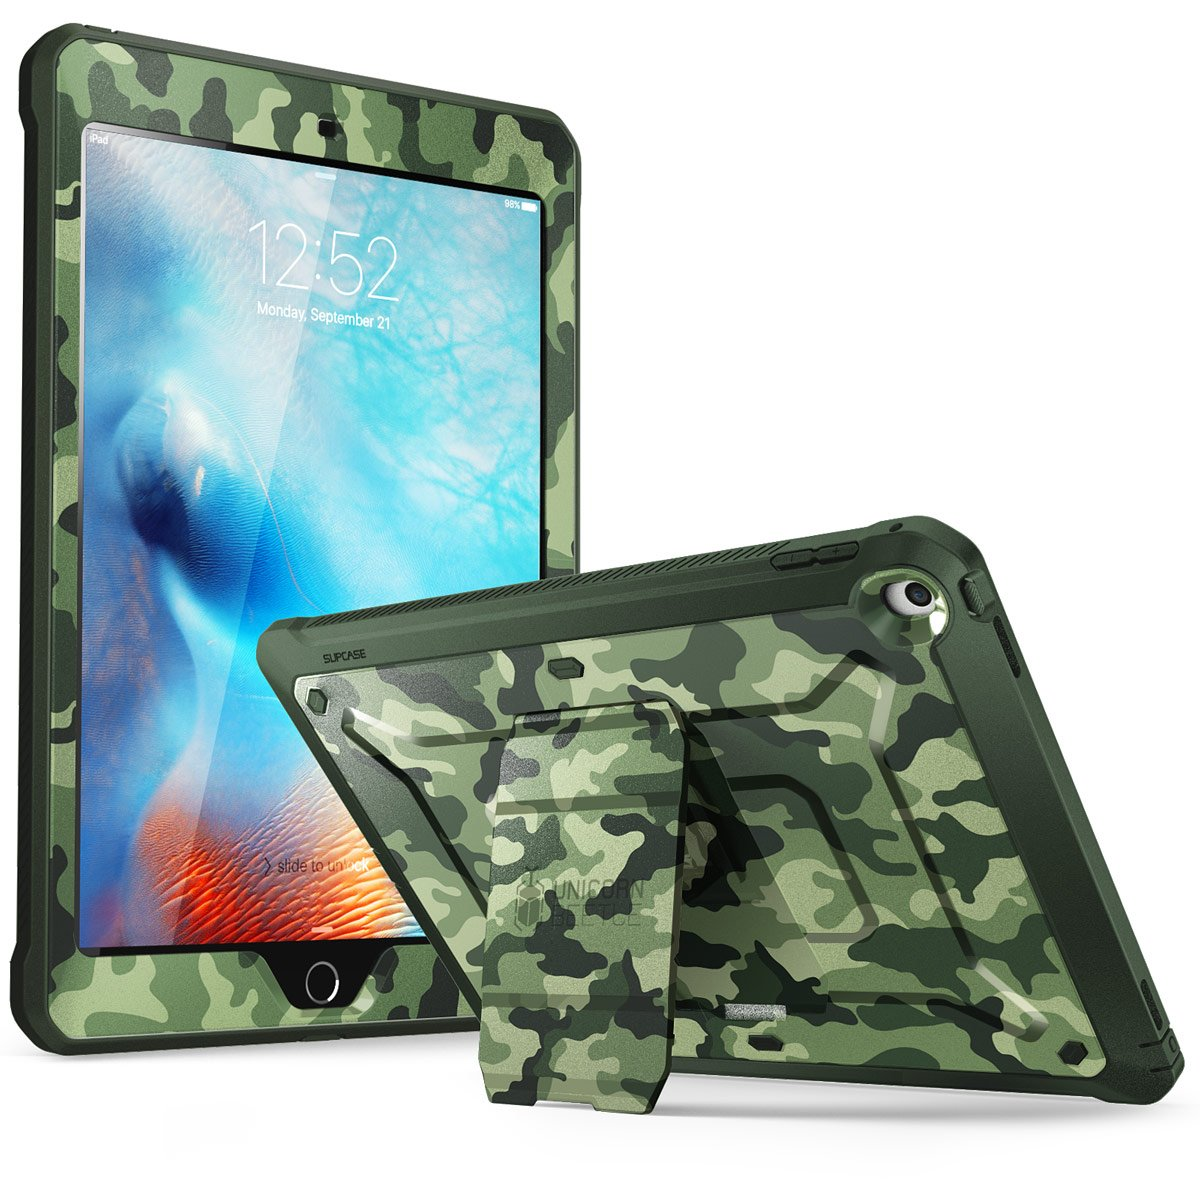 SUPCASE [Unicorn Beetle Pro Series] Case Designed for iPad 9.7 2018/2017, with Built-in Screen Protector & Dual Layer Full Body Rugged Protective Case for iPad 9.7 5th / 6th Generation (Camo) by SUPCASE